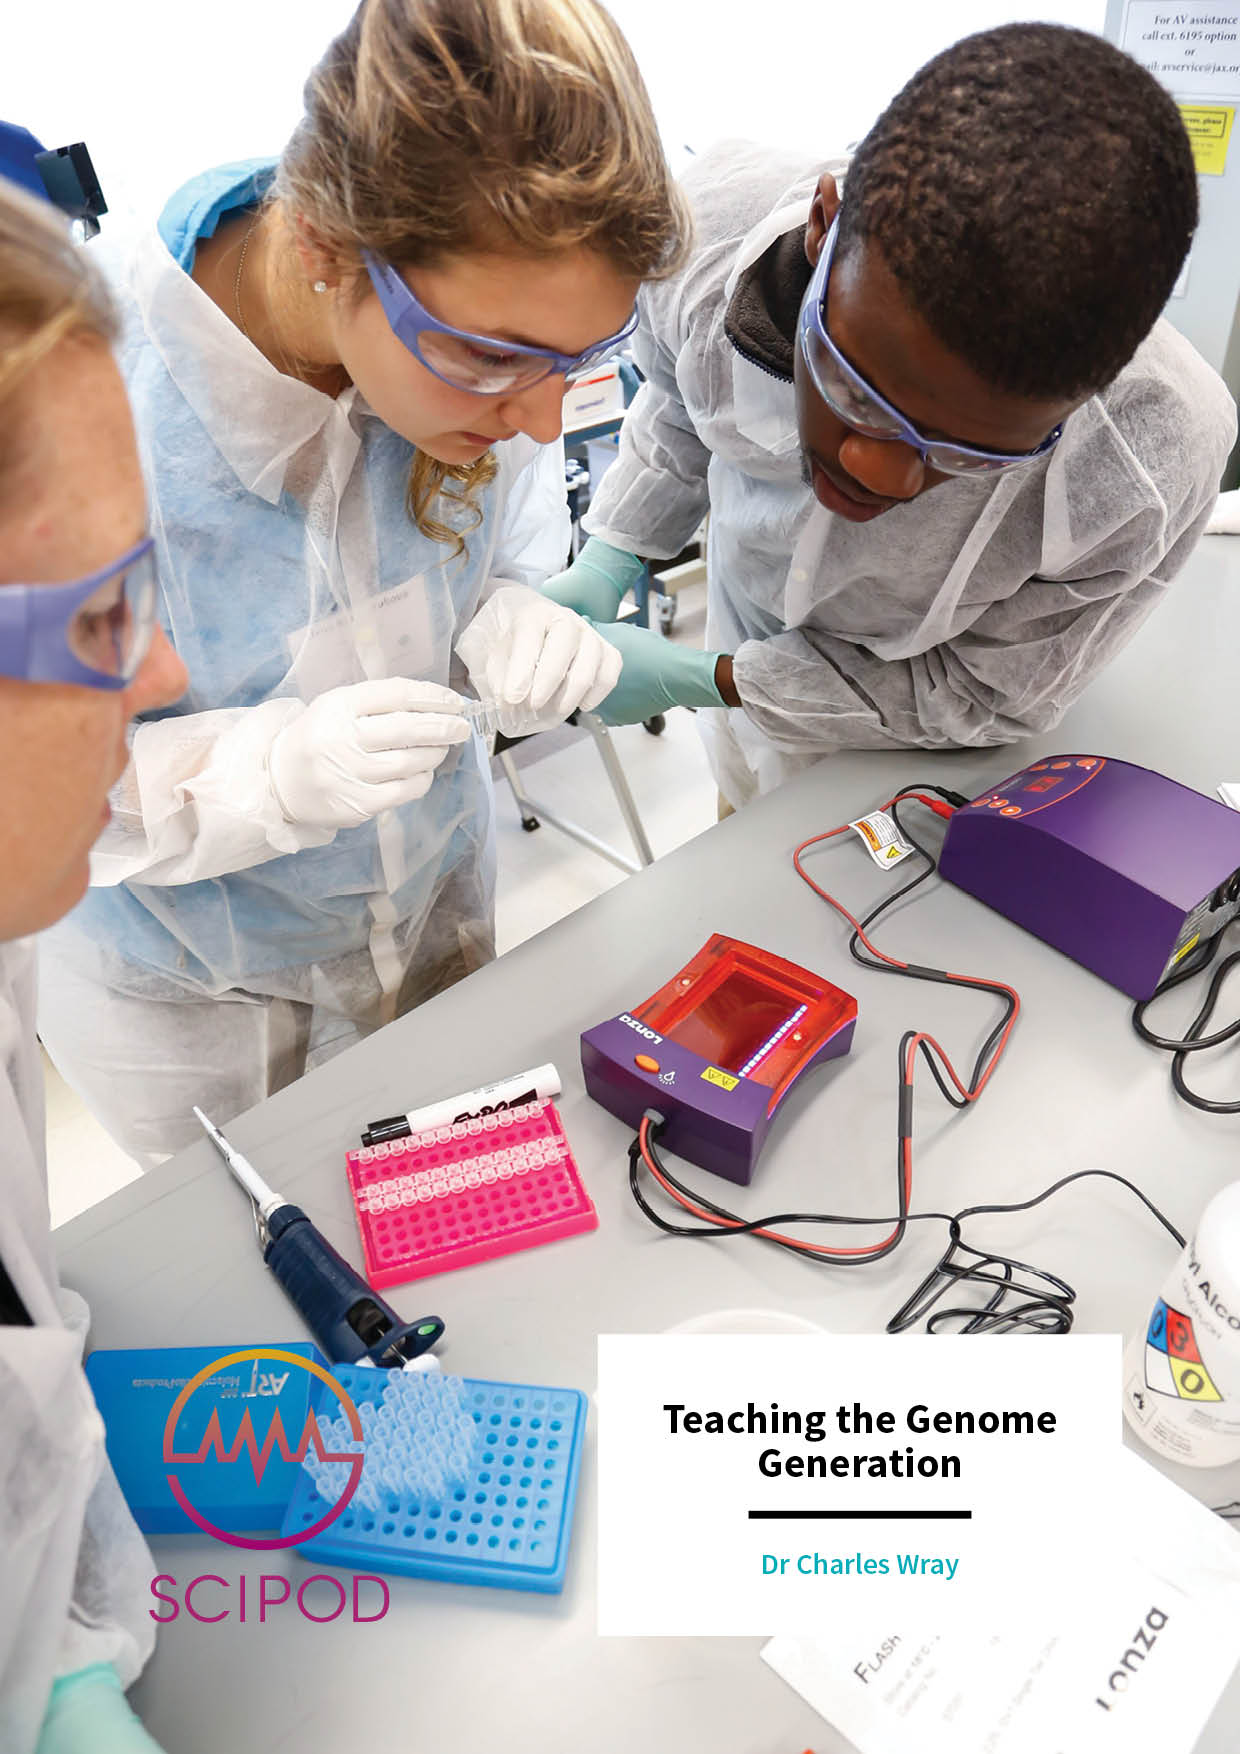 Teaching the Genome Generation – Dr Charles Wray, The Jackson Laboratory